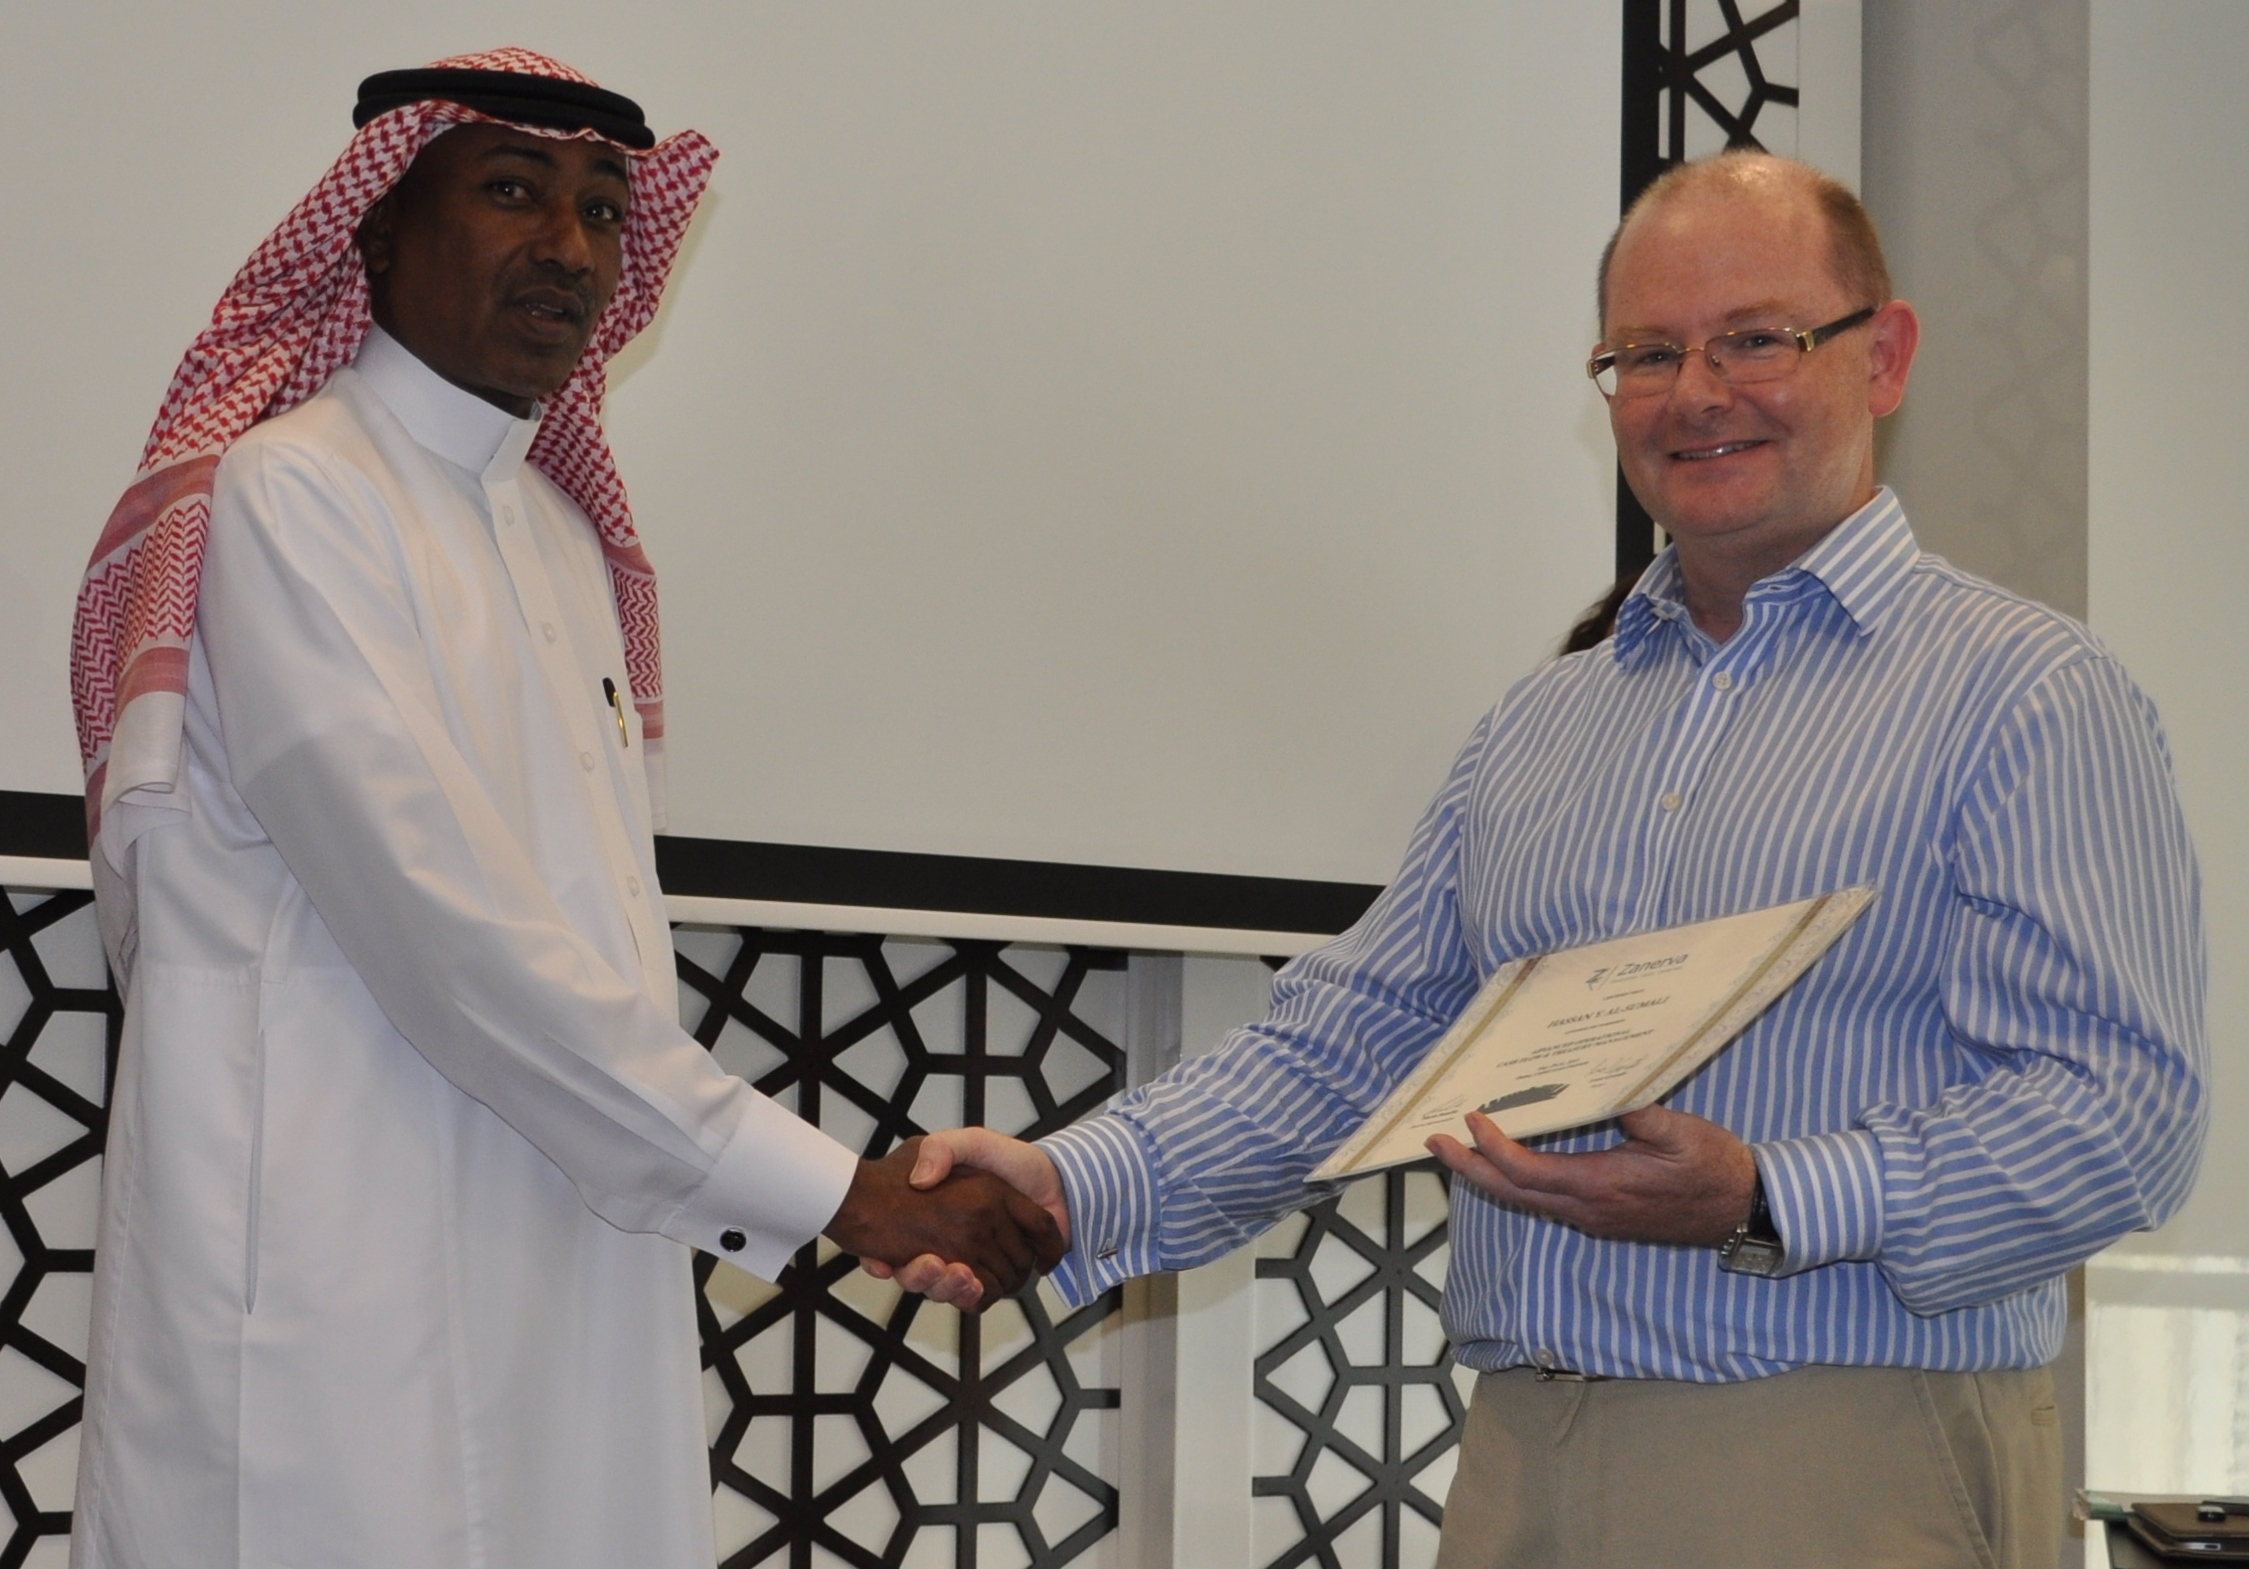 Hassan Y. Al-Sumali (Division Manager Corporate Finance)  receiving his certificate of workshop participation from Leon Grandy (Zanerva Partner Consultant)